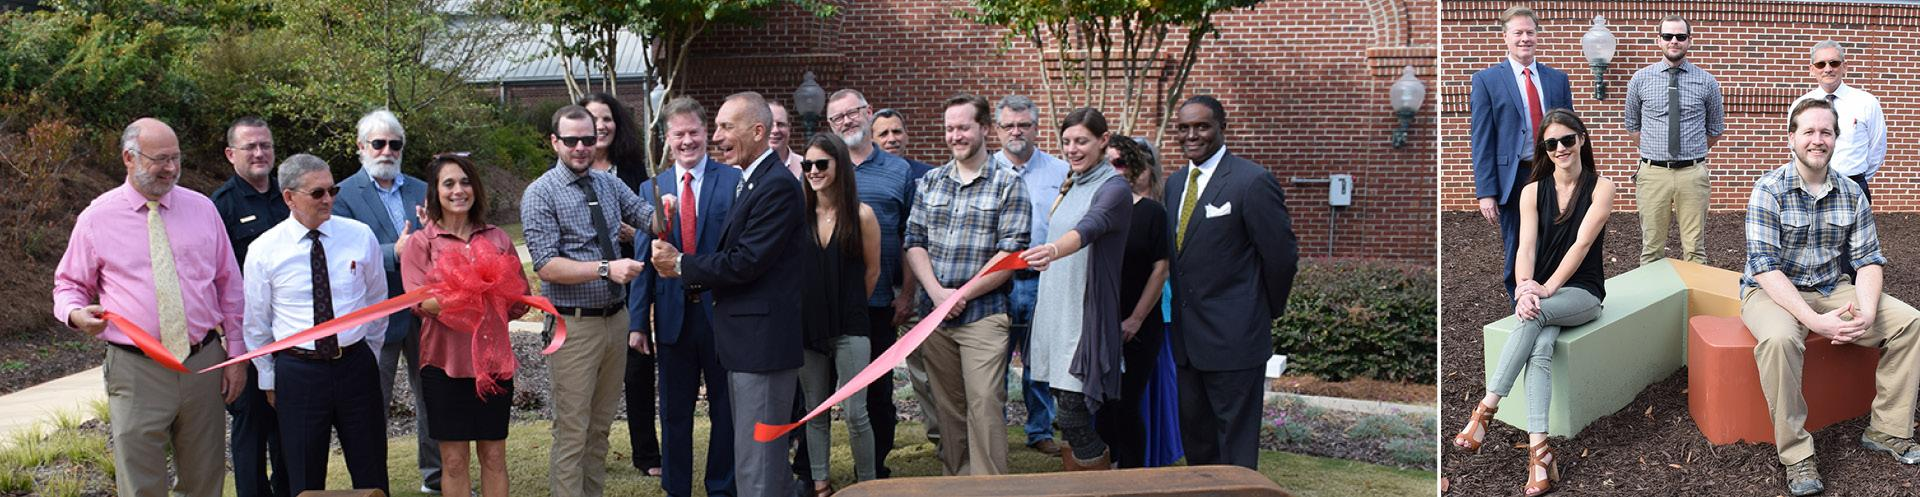 KSU School of Art and Design and City of Kennesaw Collaborate on Public Art Project